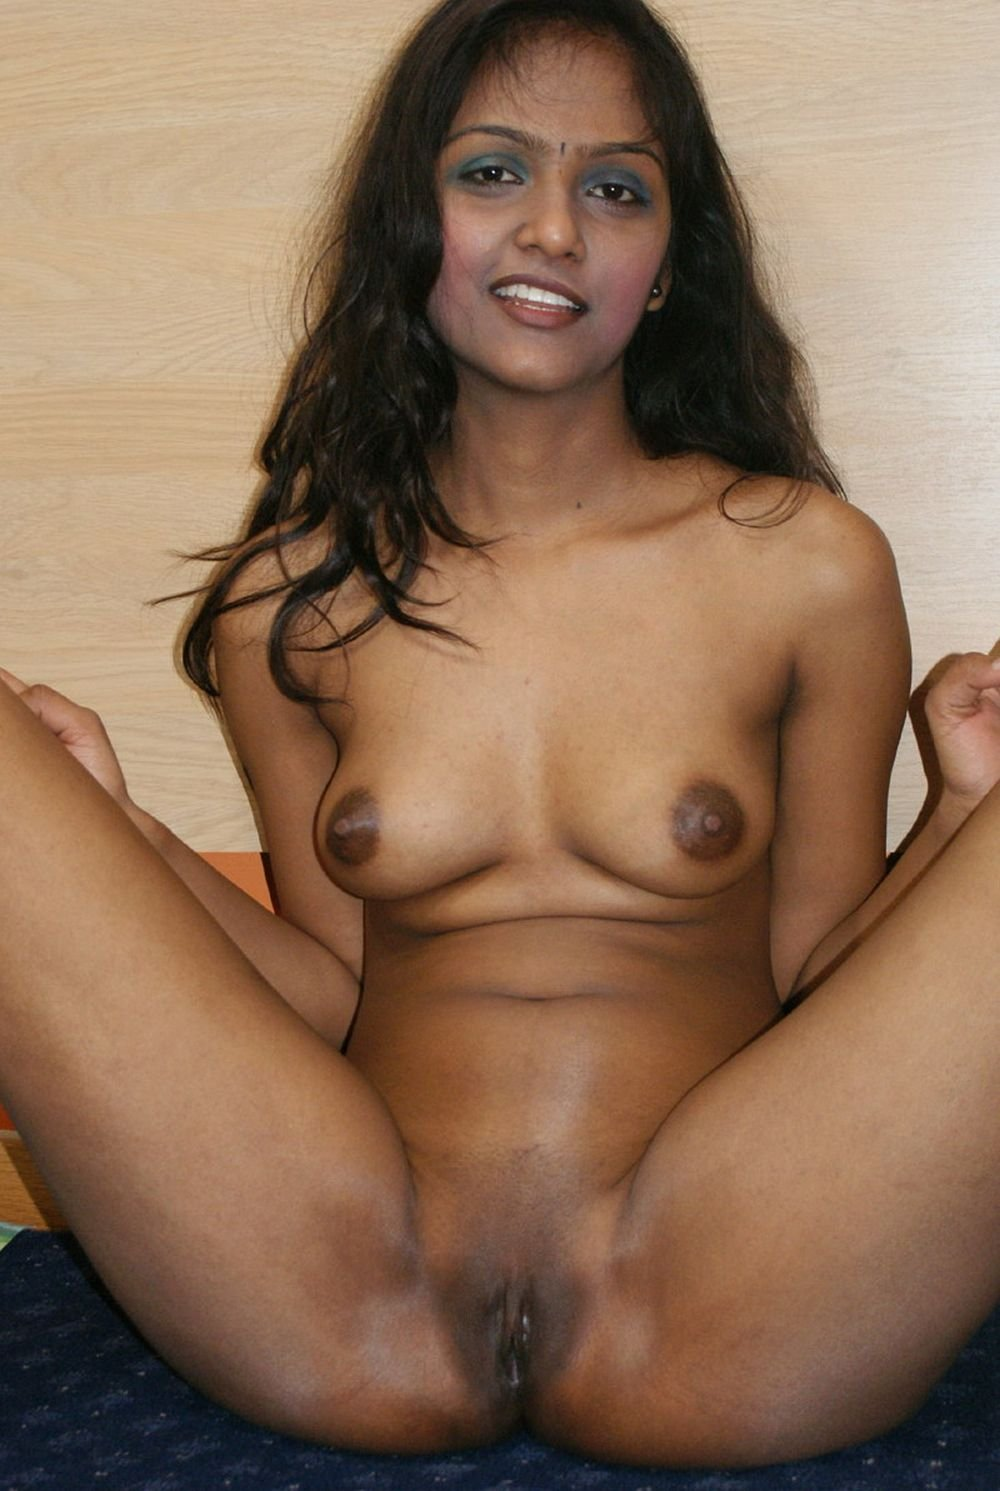 With you Indian model great fuck pussy you very